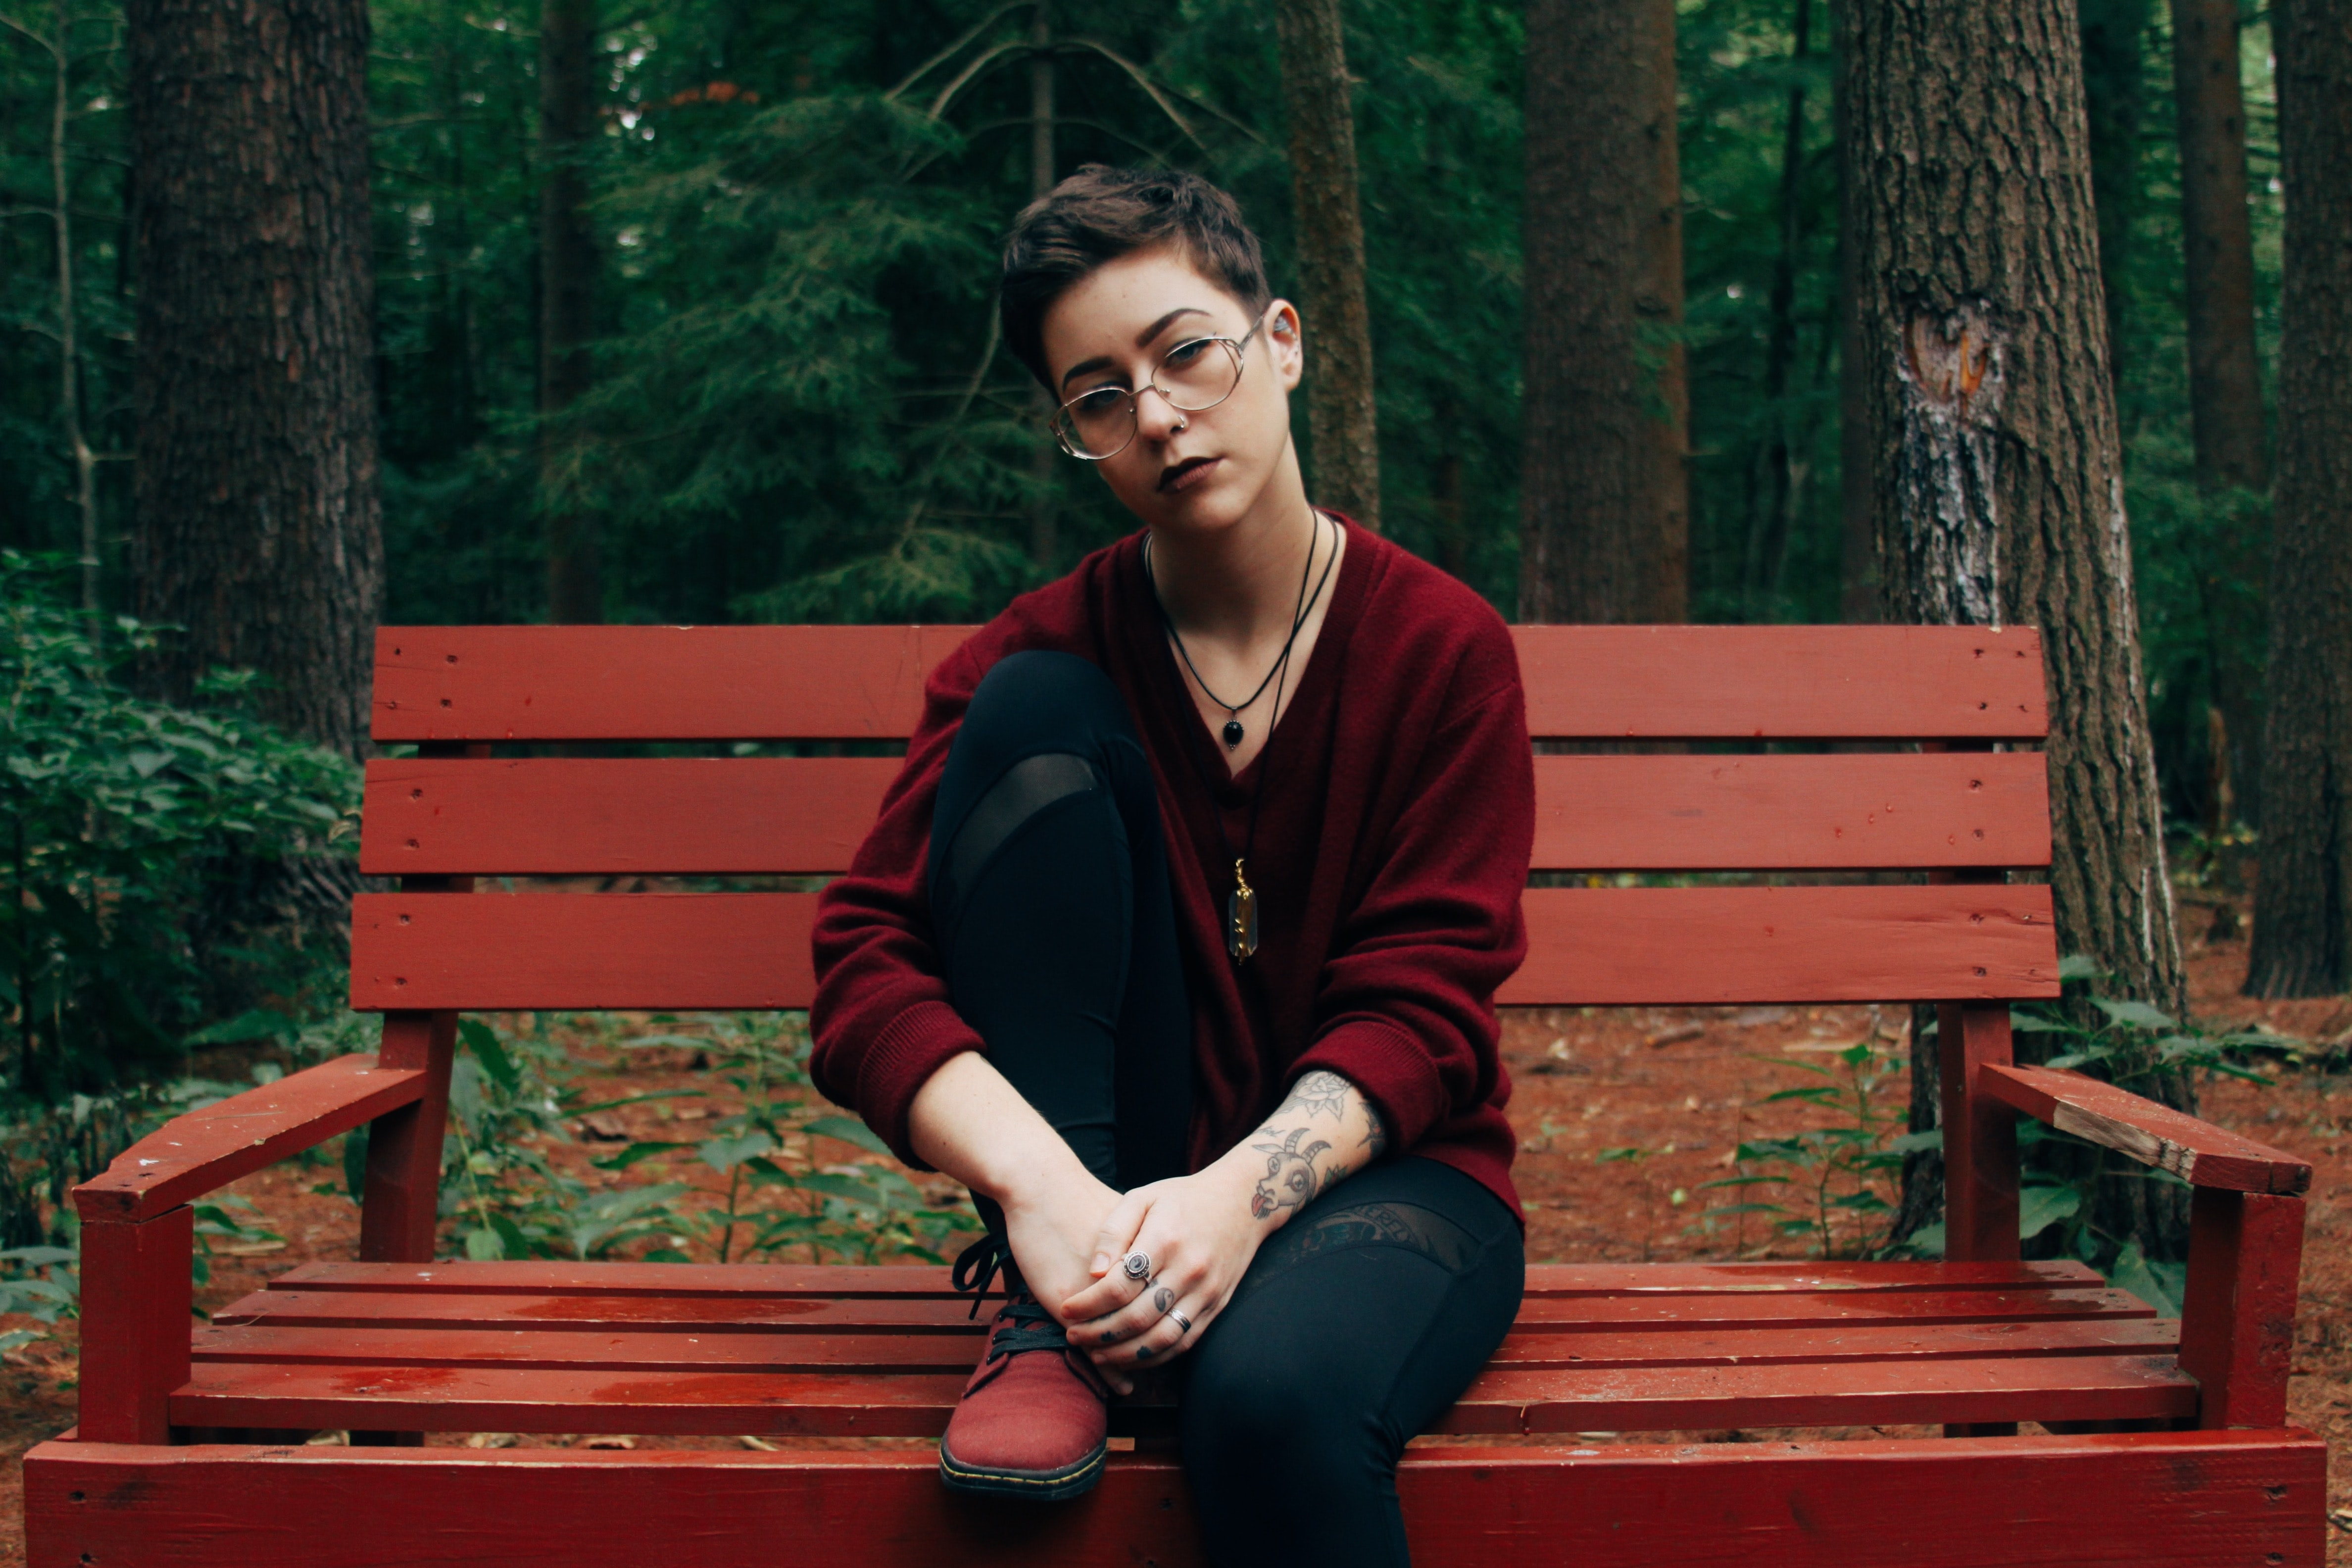 woman sitting on bench near forest